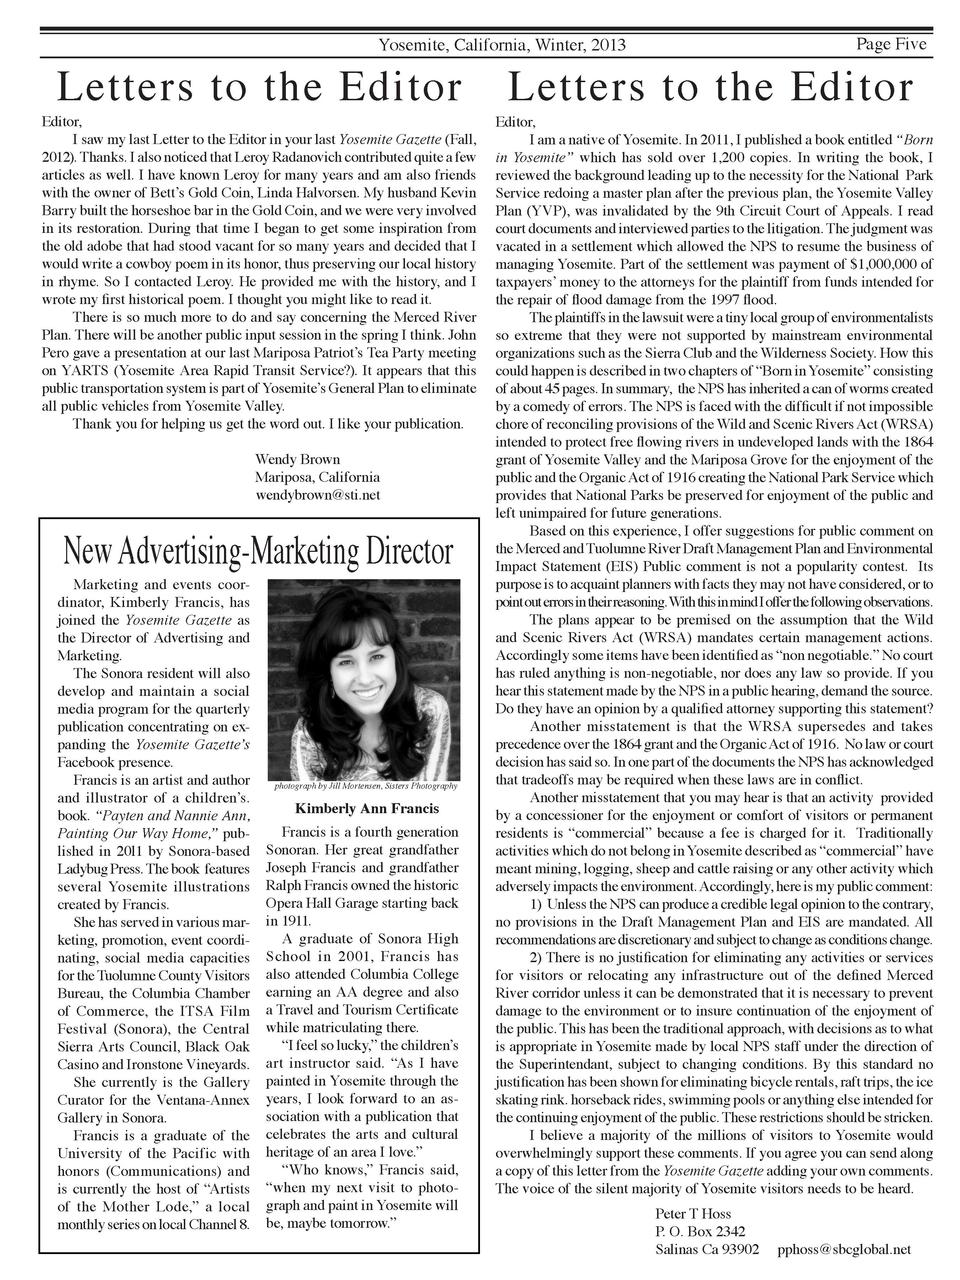 Page Five  Yosemite, California, Winter, 2013  Letters to the Editor  Editor,   I saw my last Letter to the Editor in your...